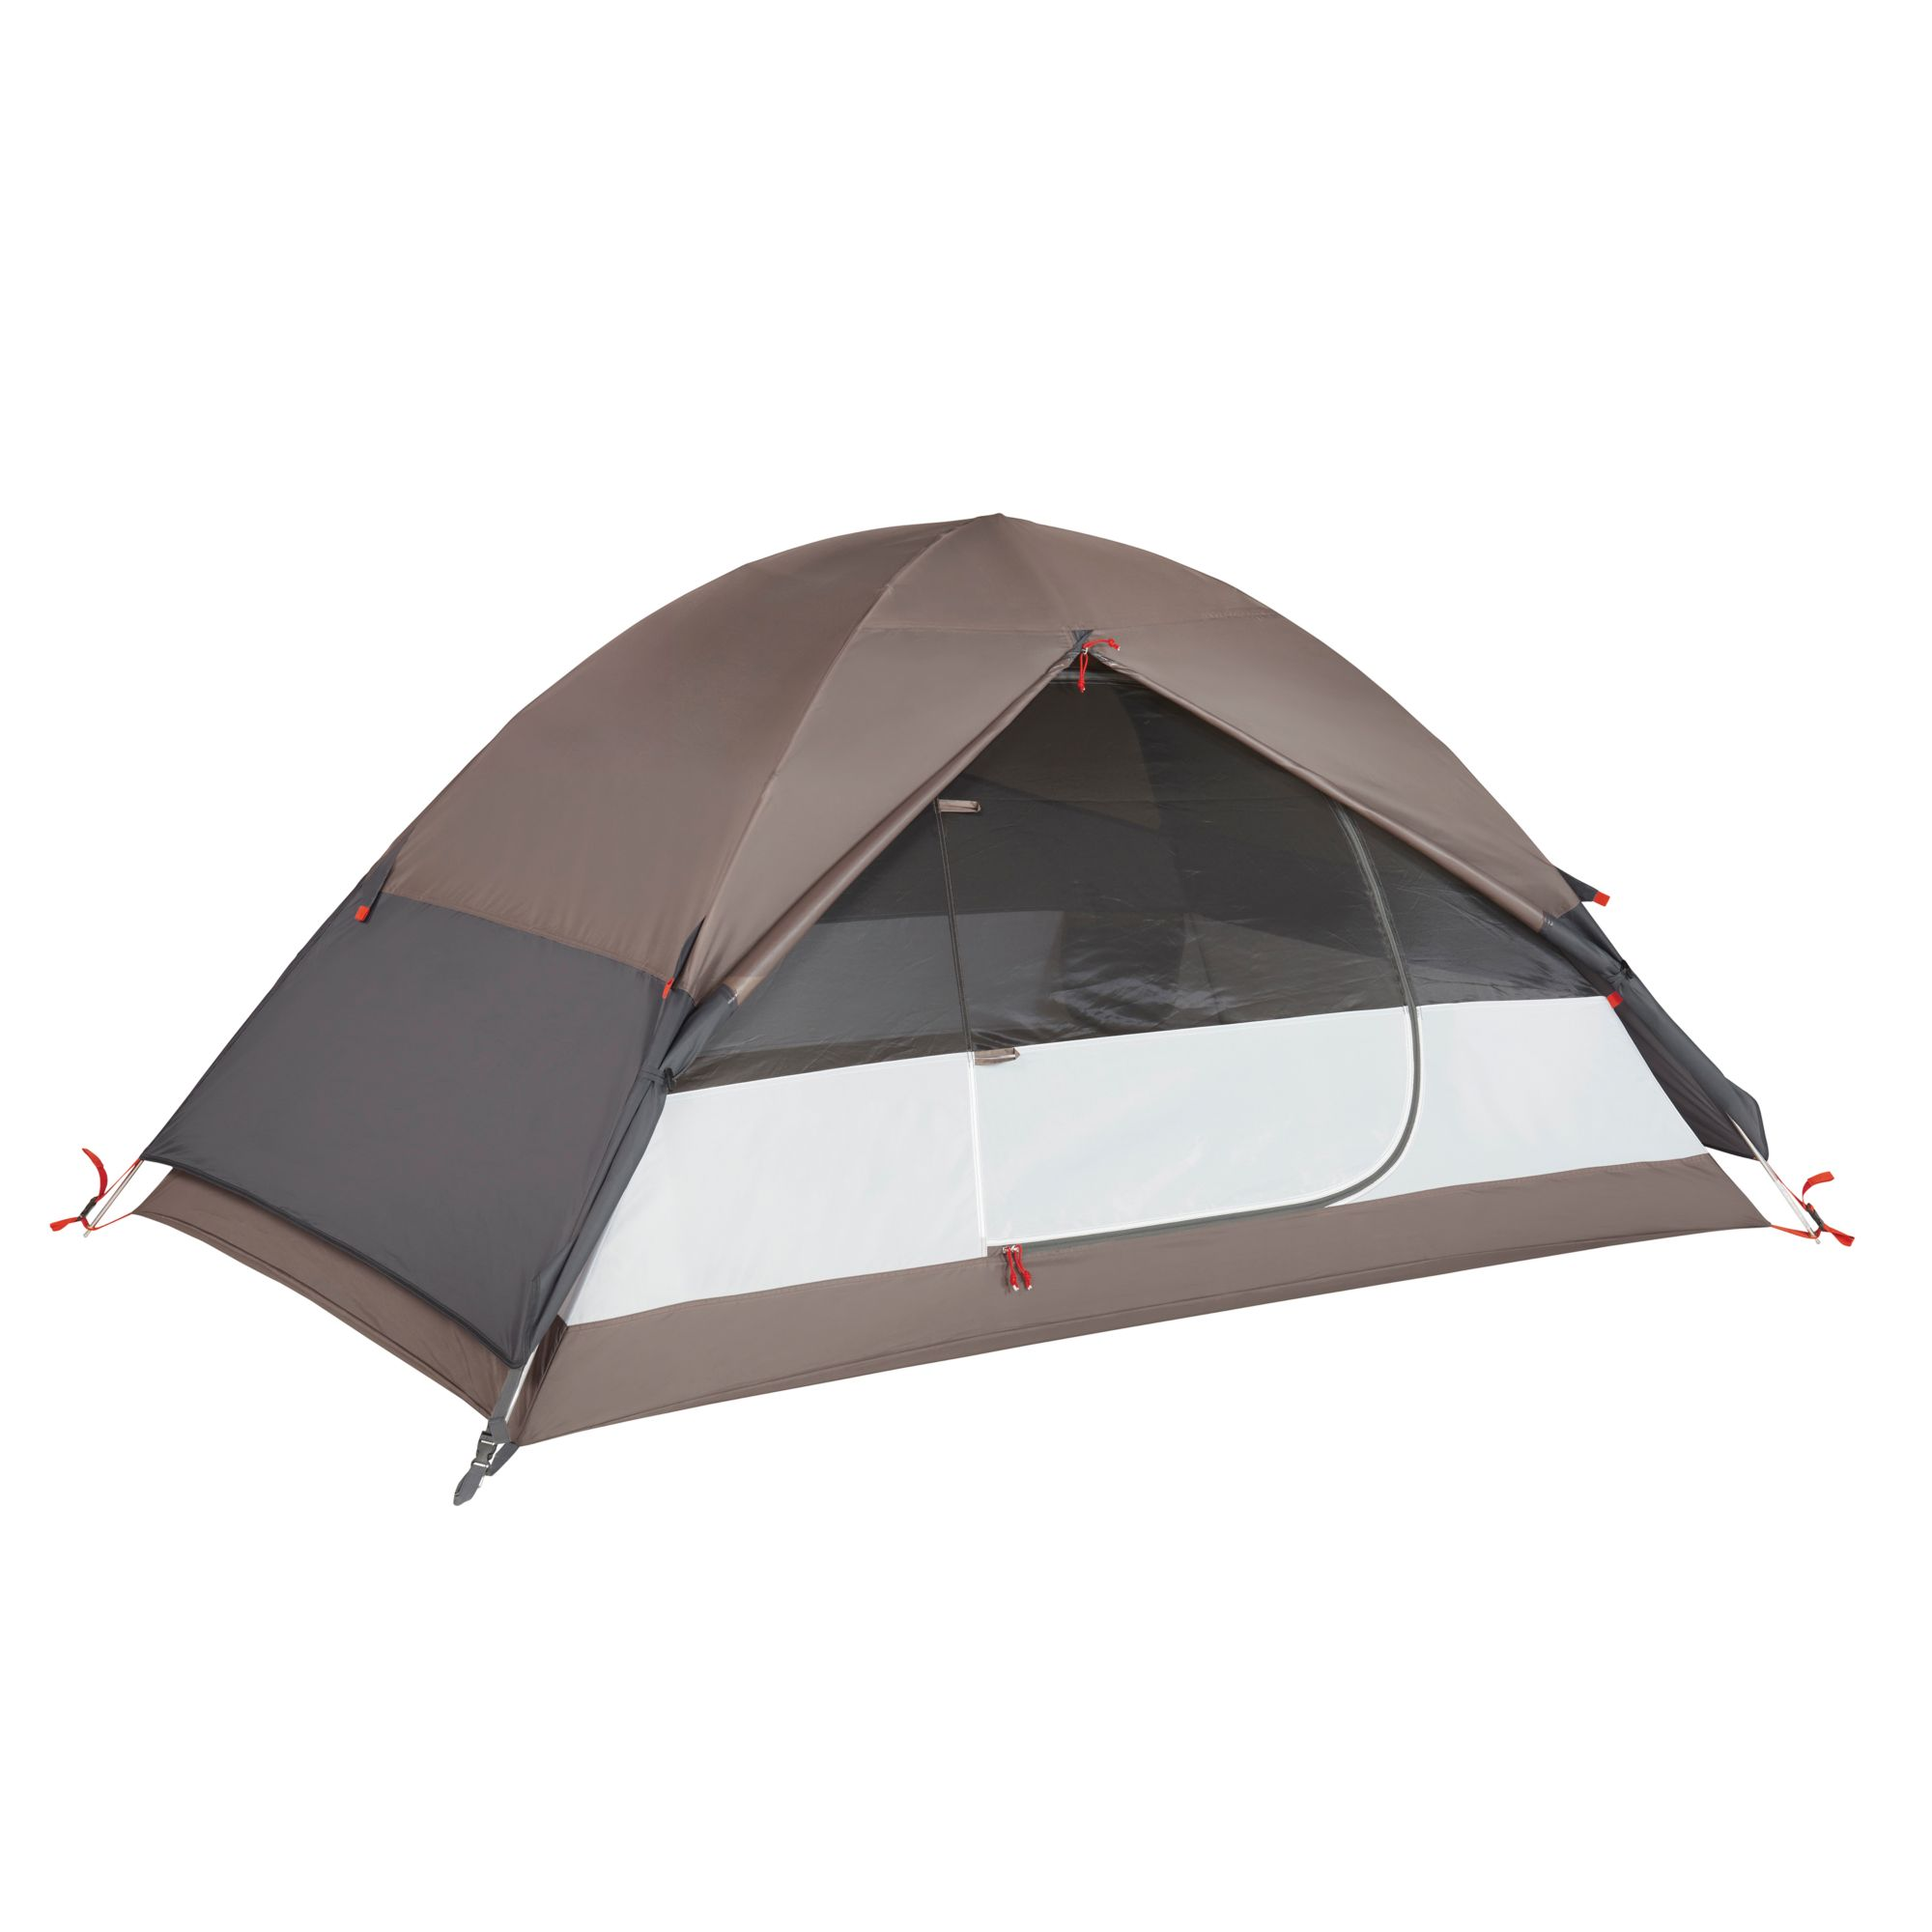 Kelty Circuit 2 Person Backpacking Tent  sc 1 st  Field u0026 Stream & Kelty Circuit 2 Person Backpacking Tent | Field u0026 Stream